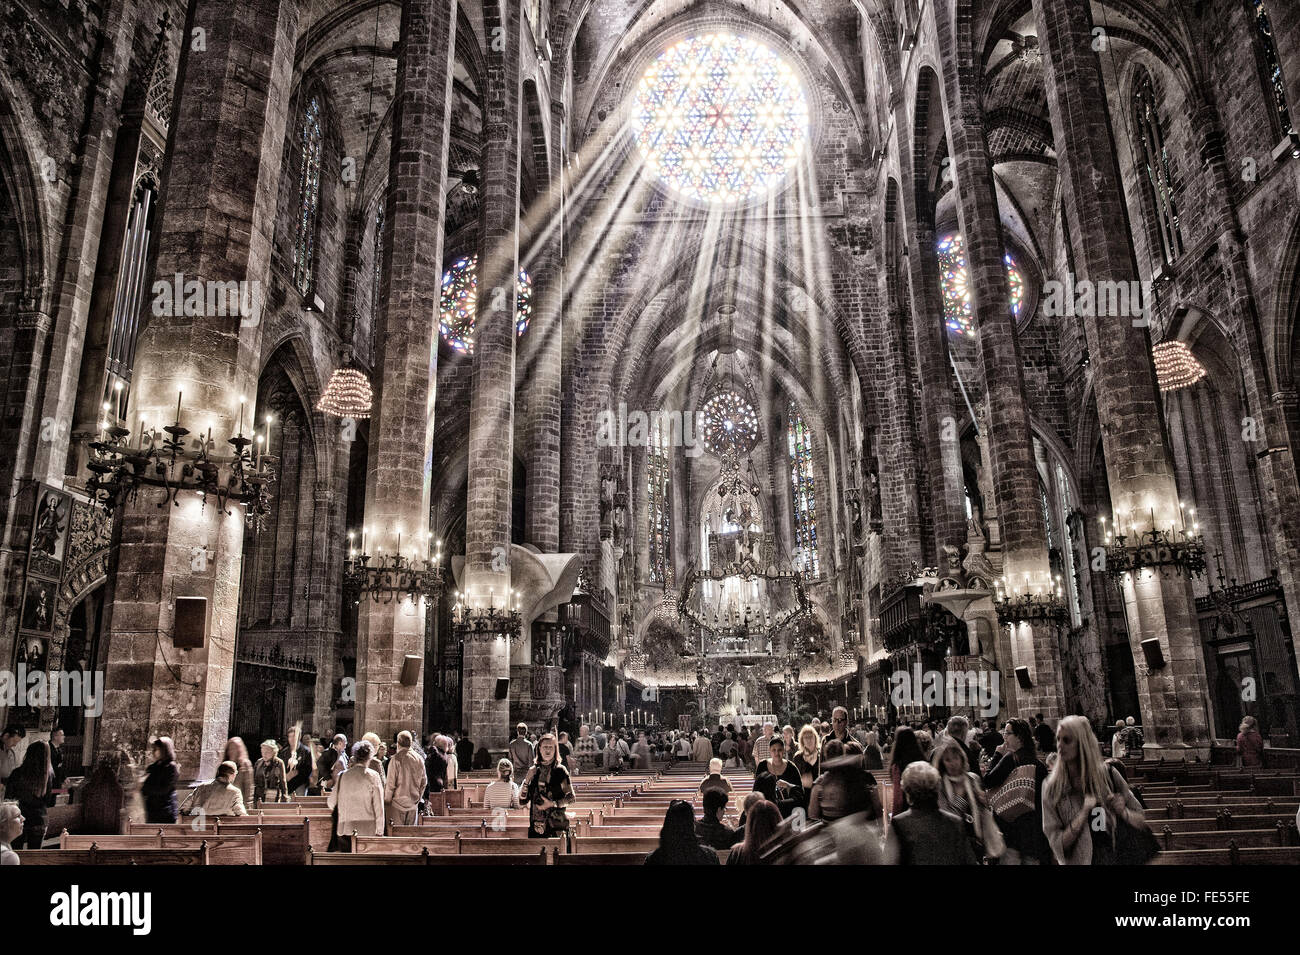 Europe, Spain, Balearic Islands, Majorca, Palma, Cathedral, La Seo Catedral. Cathedral. - Stock Image